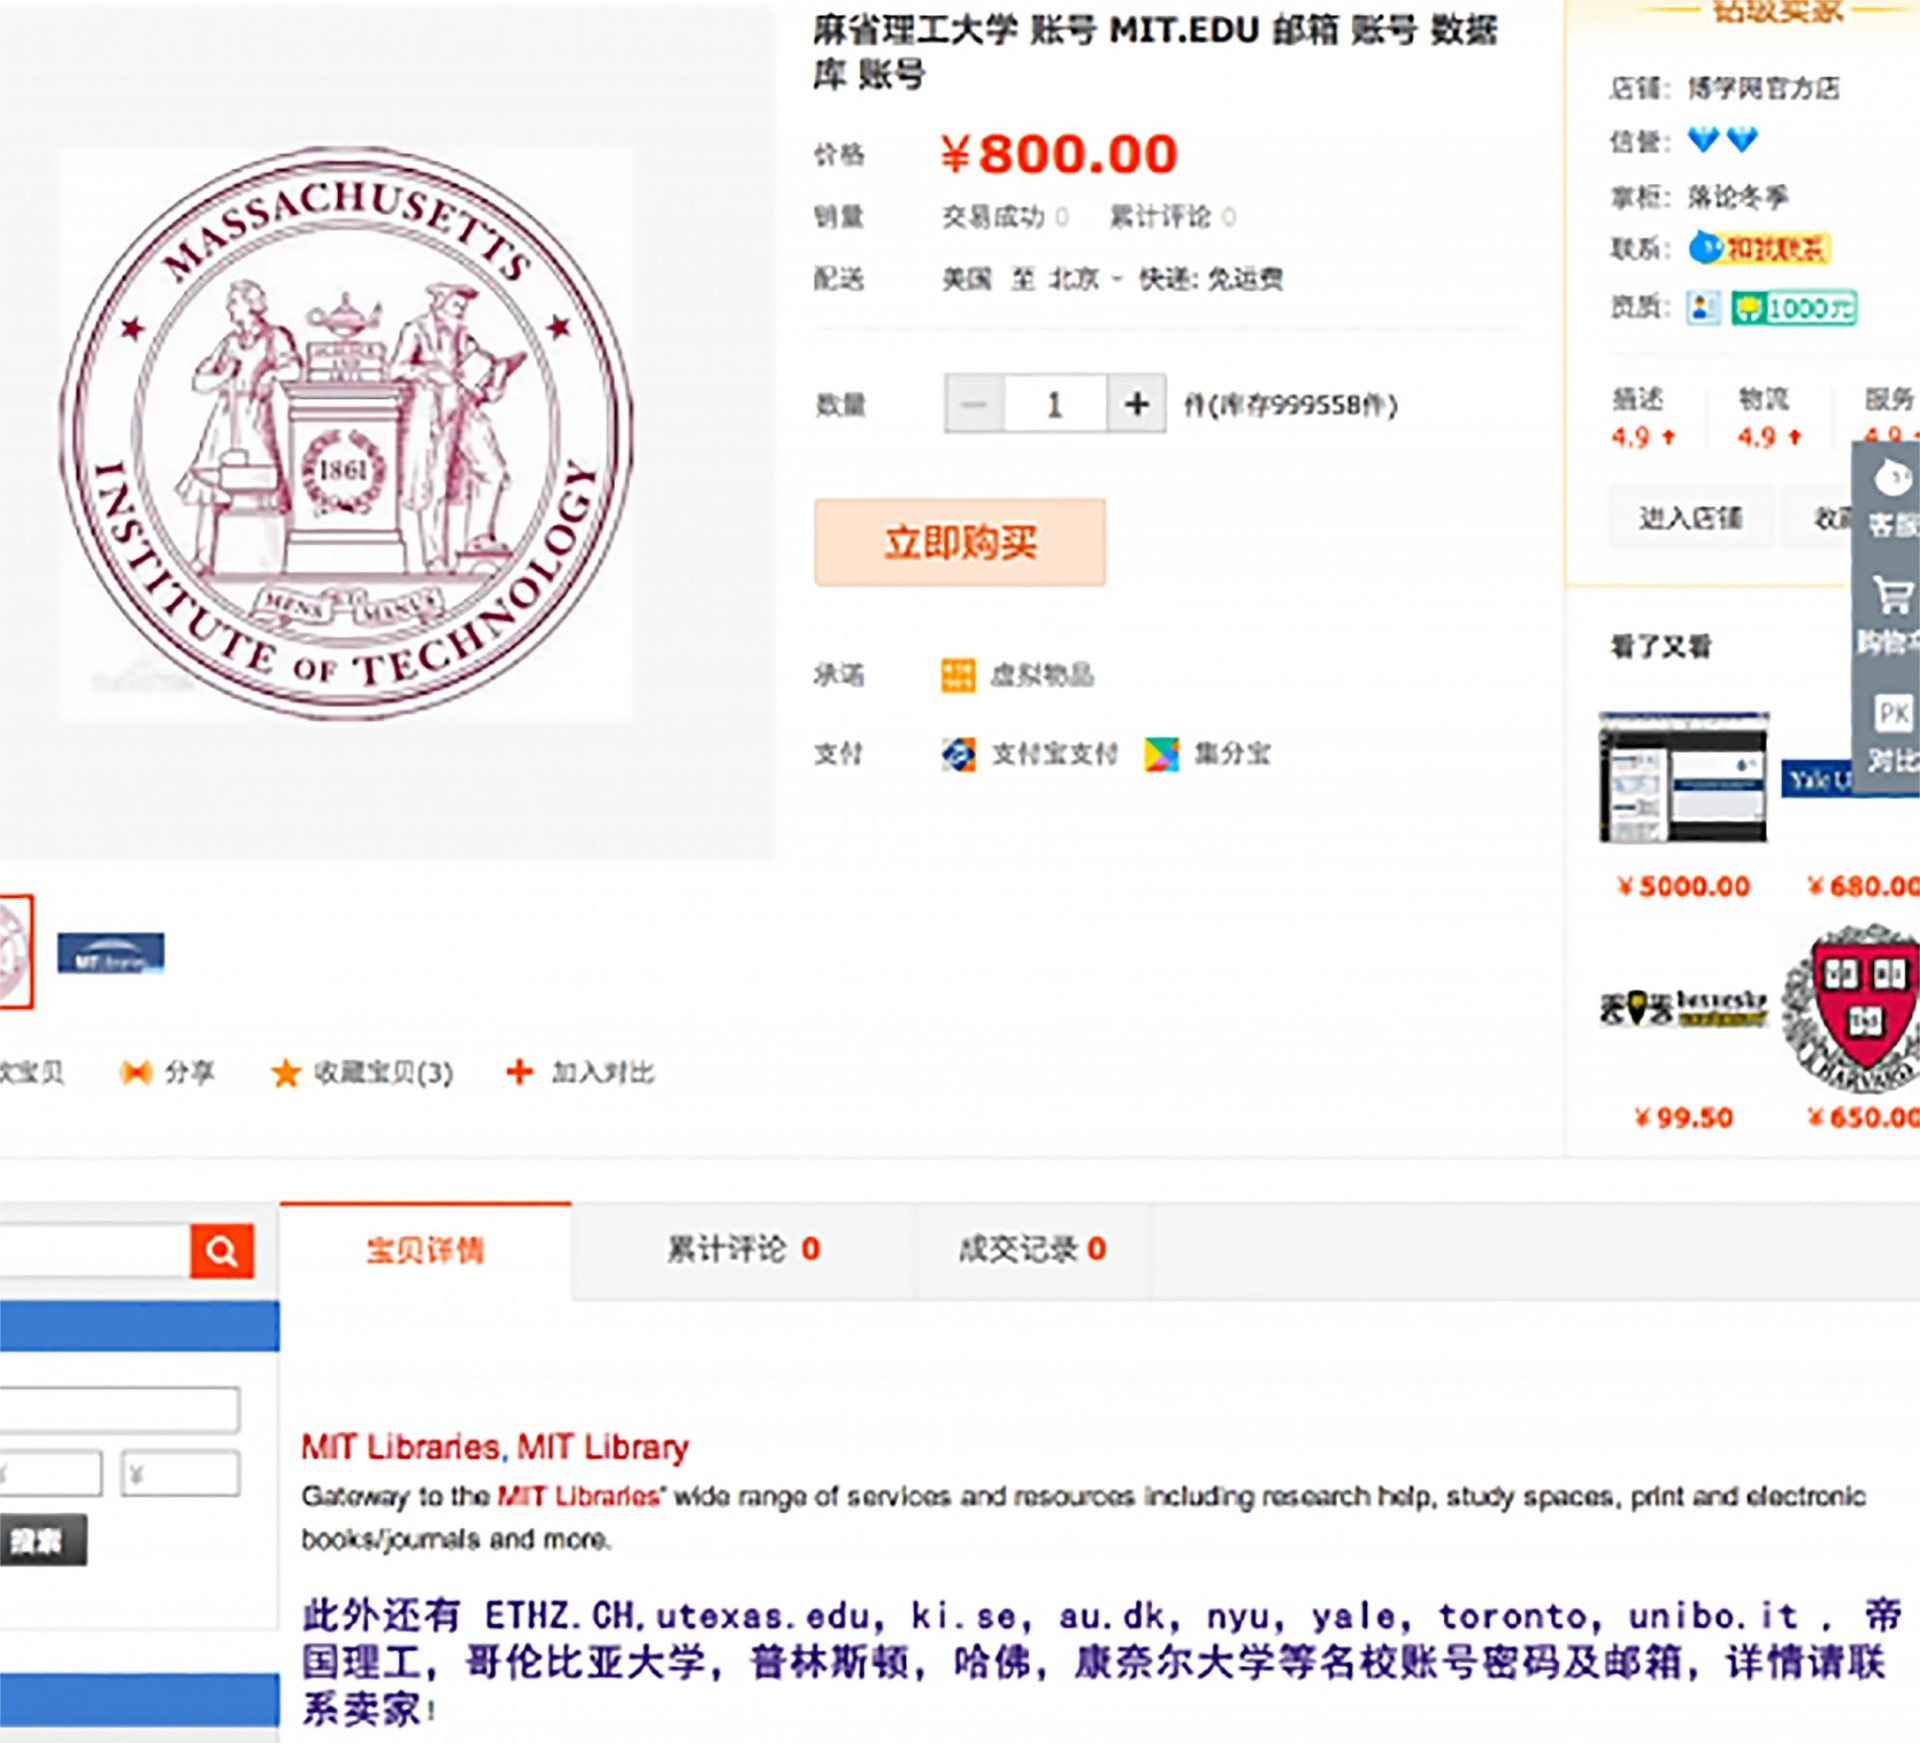 009 History Research Paper For Sale Taobao 500x454 3c6e46375aaa441bb8137c844c3ee66b Phenomenal 1920